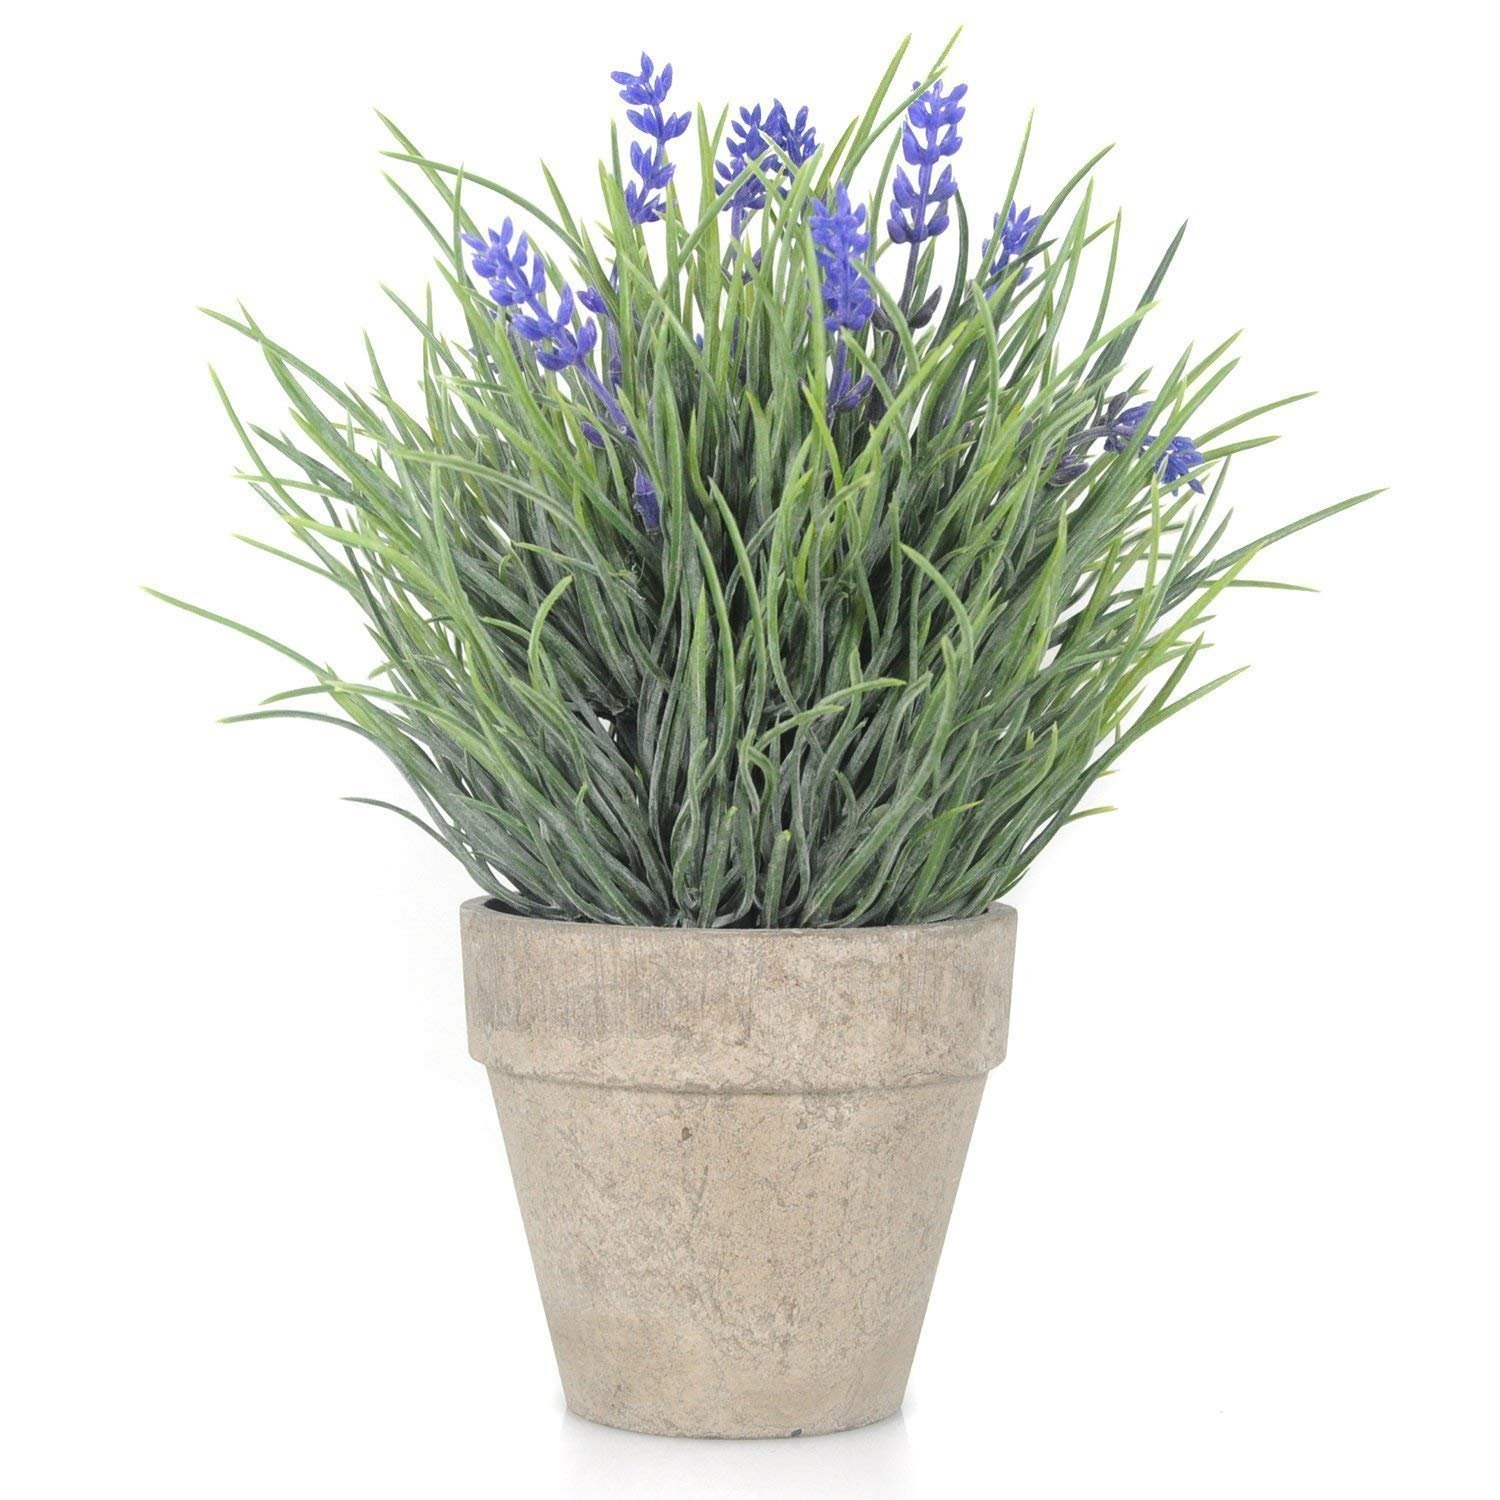 Velener Artificial Flowers Provence Lavender Arrangements In Pots For Home Decor (Purple, Green) by Velener